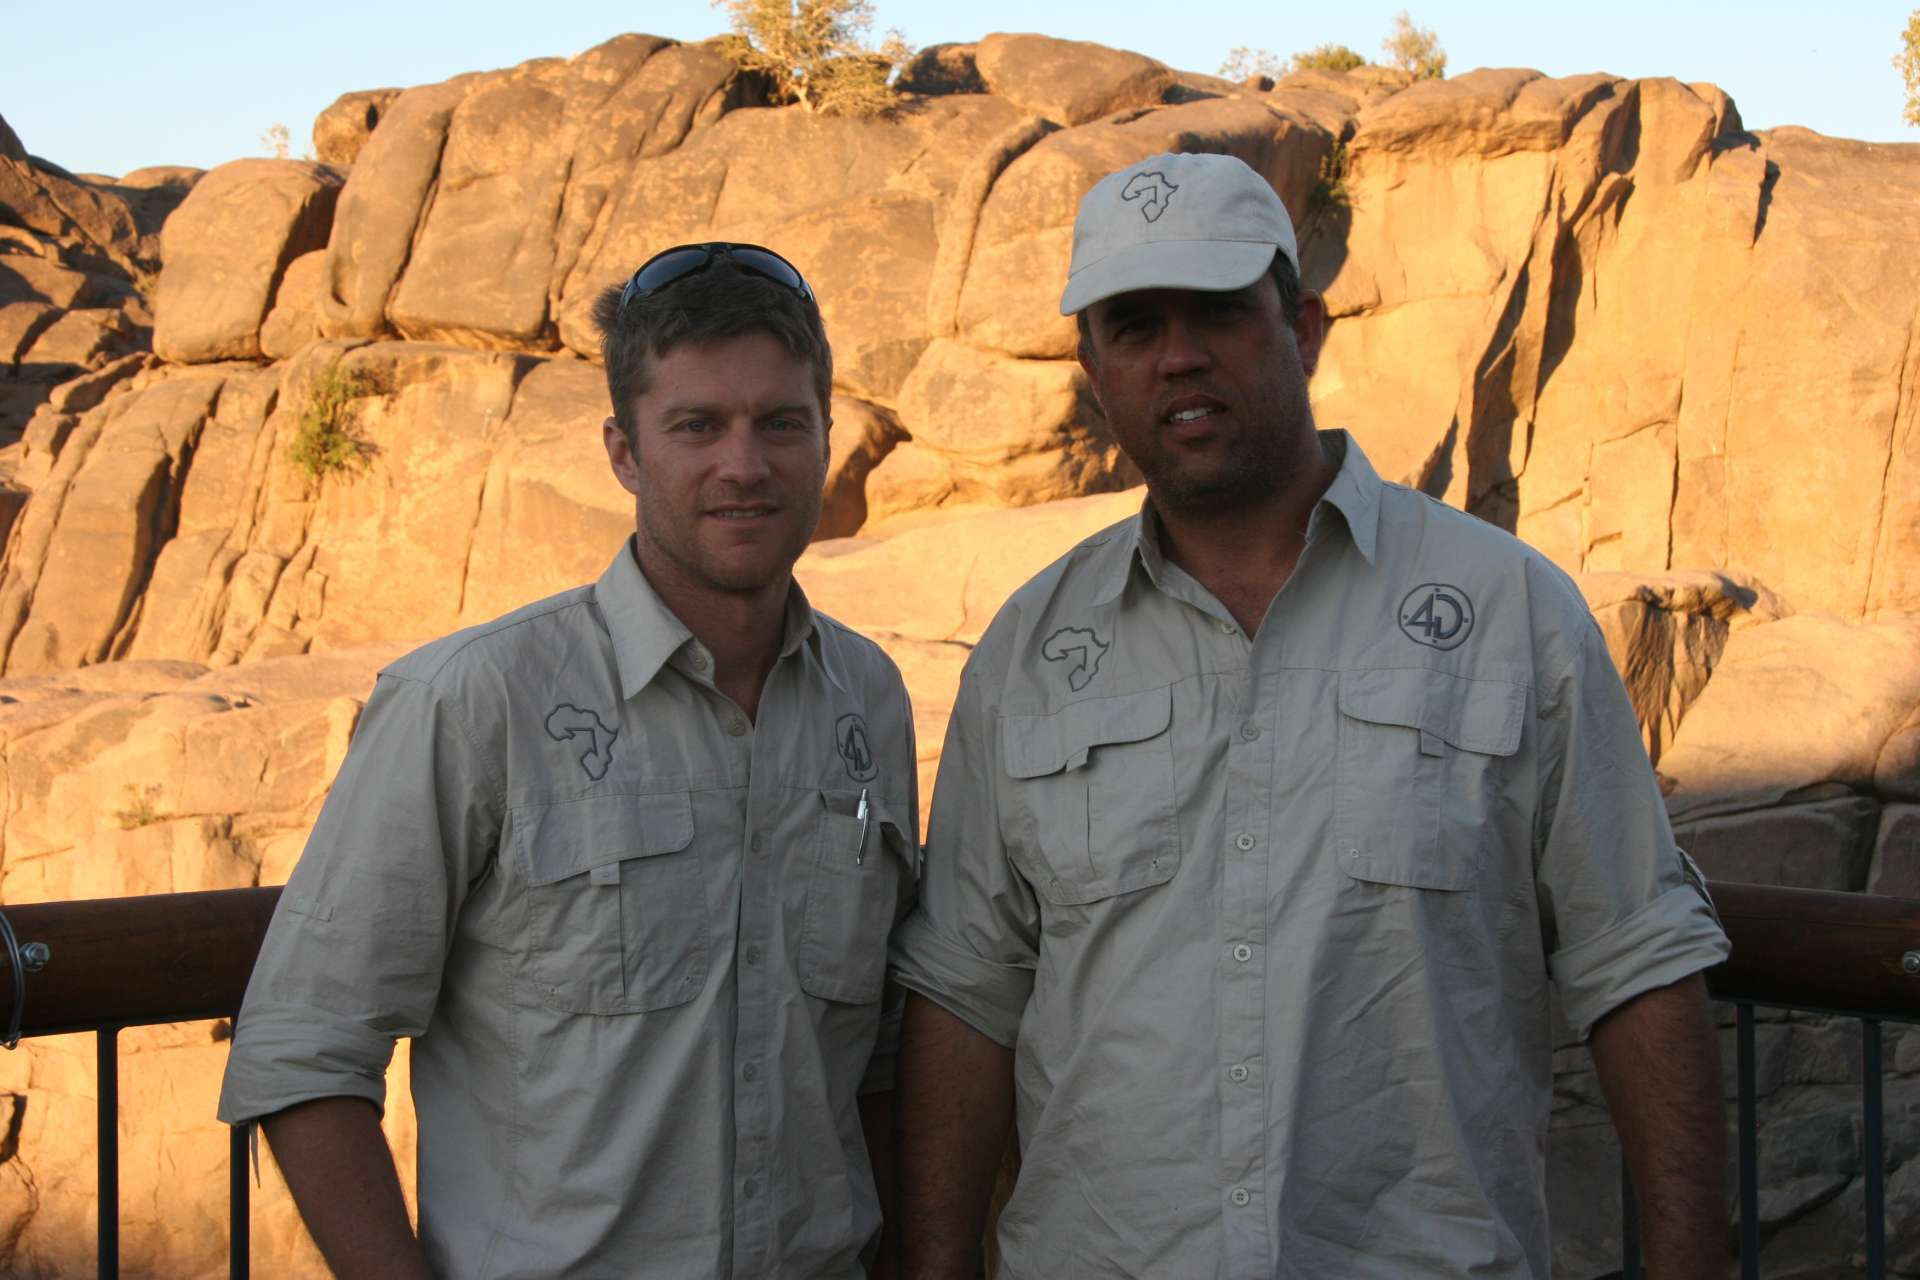 Steve and Andre in Africa